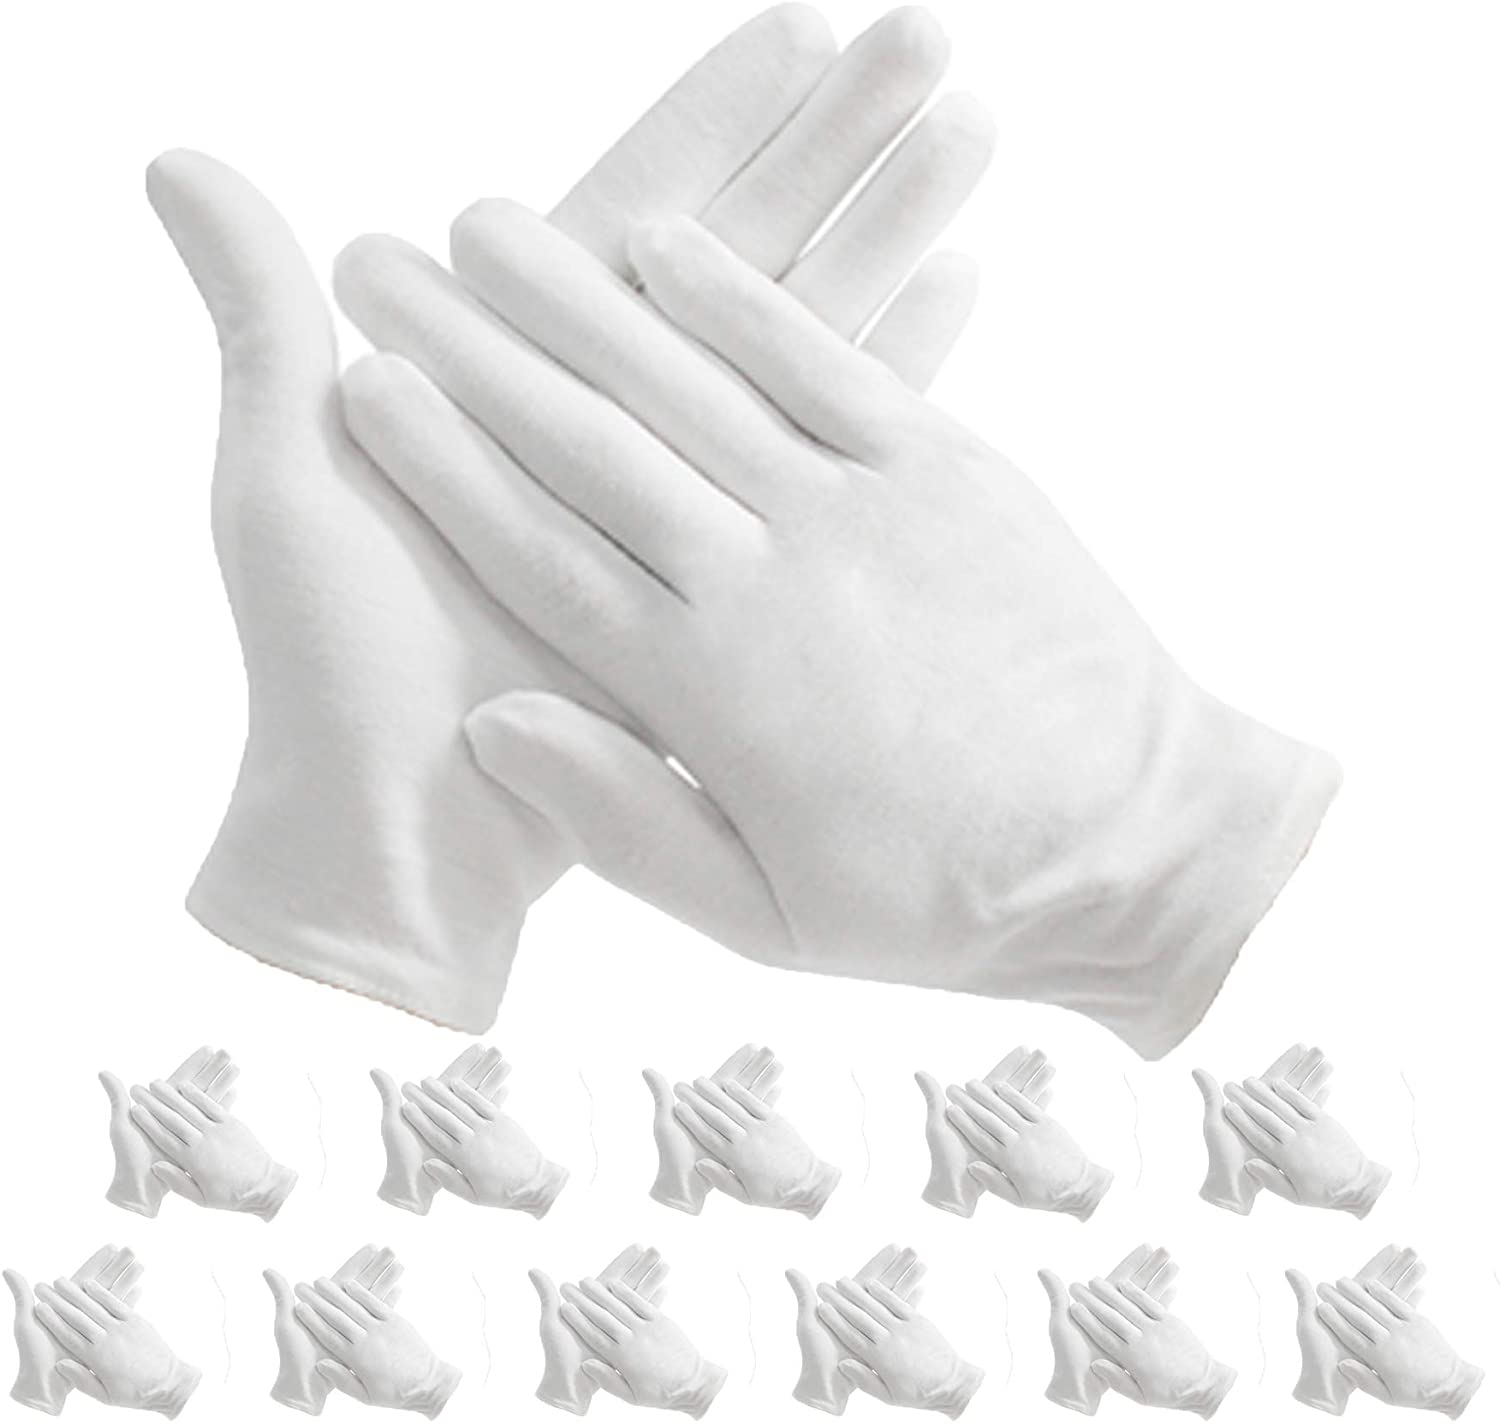 Maydahui 12 pair White Cotton Gloves for Cosmetic Moisturizing Coin Jewelry Inspection performance driving watch repair work/lining – Extra Large Size 9 inch, (Pack of 12)